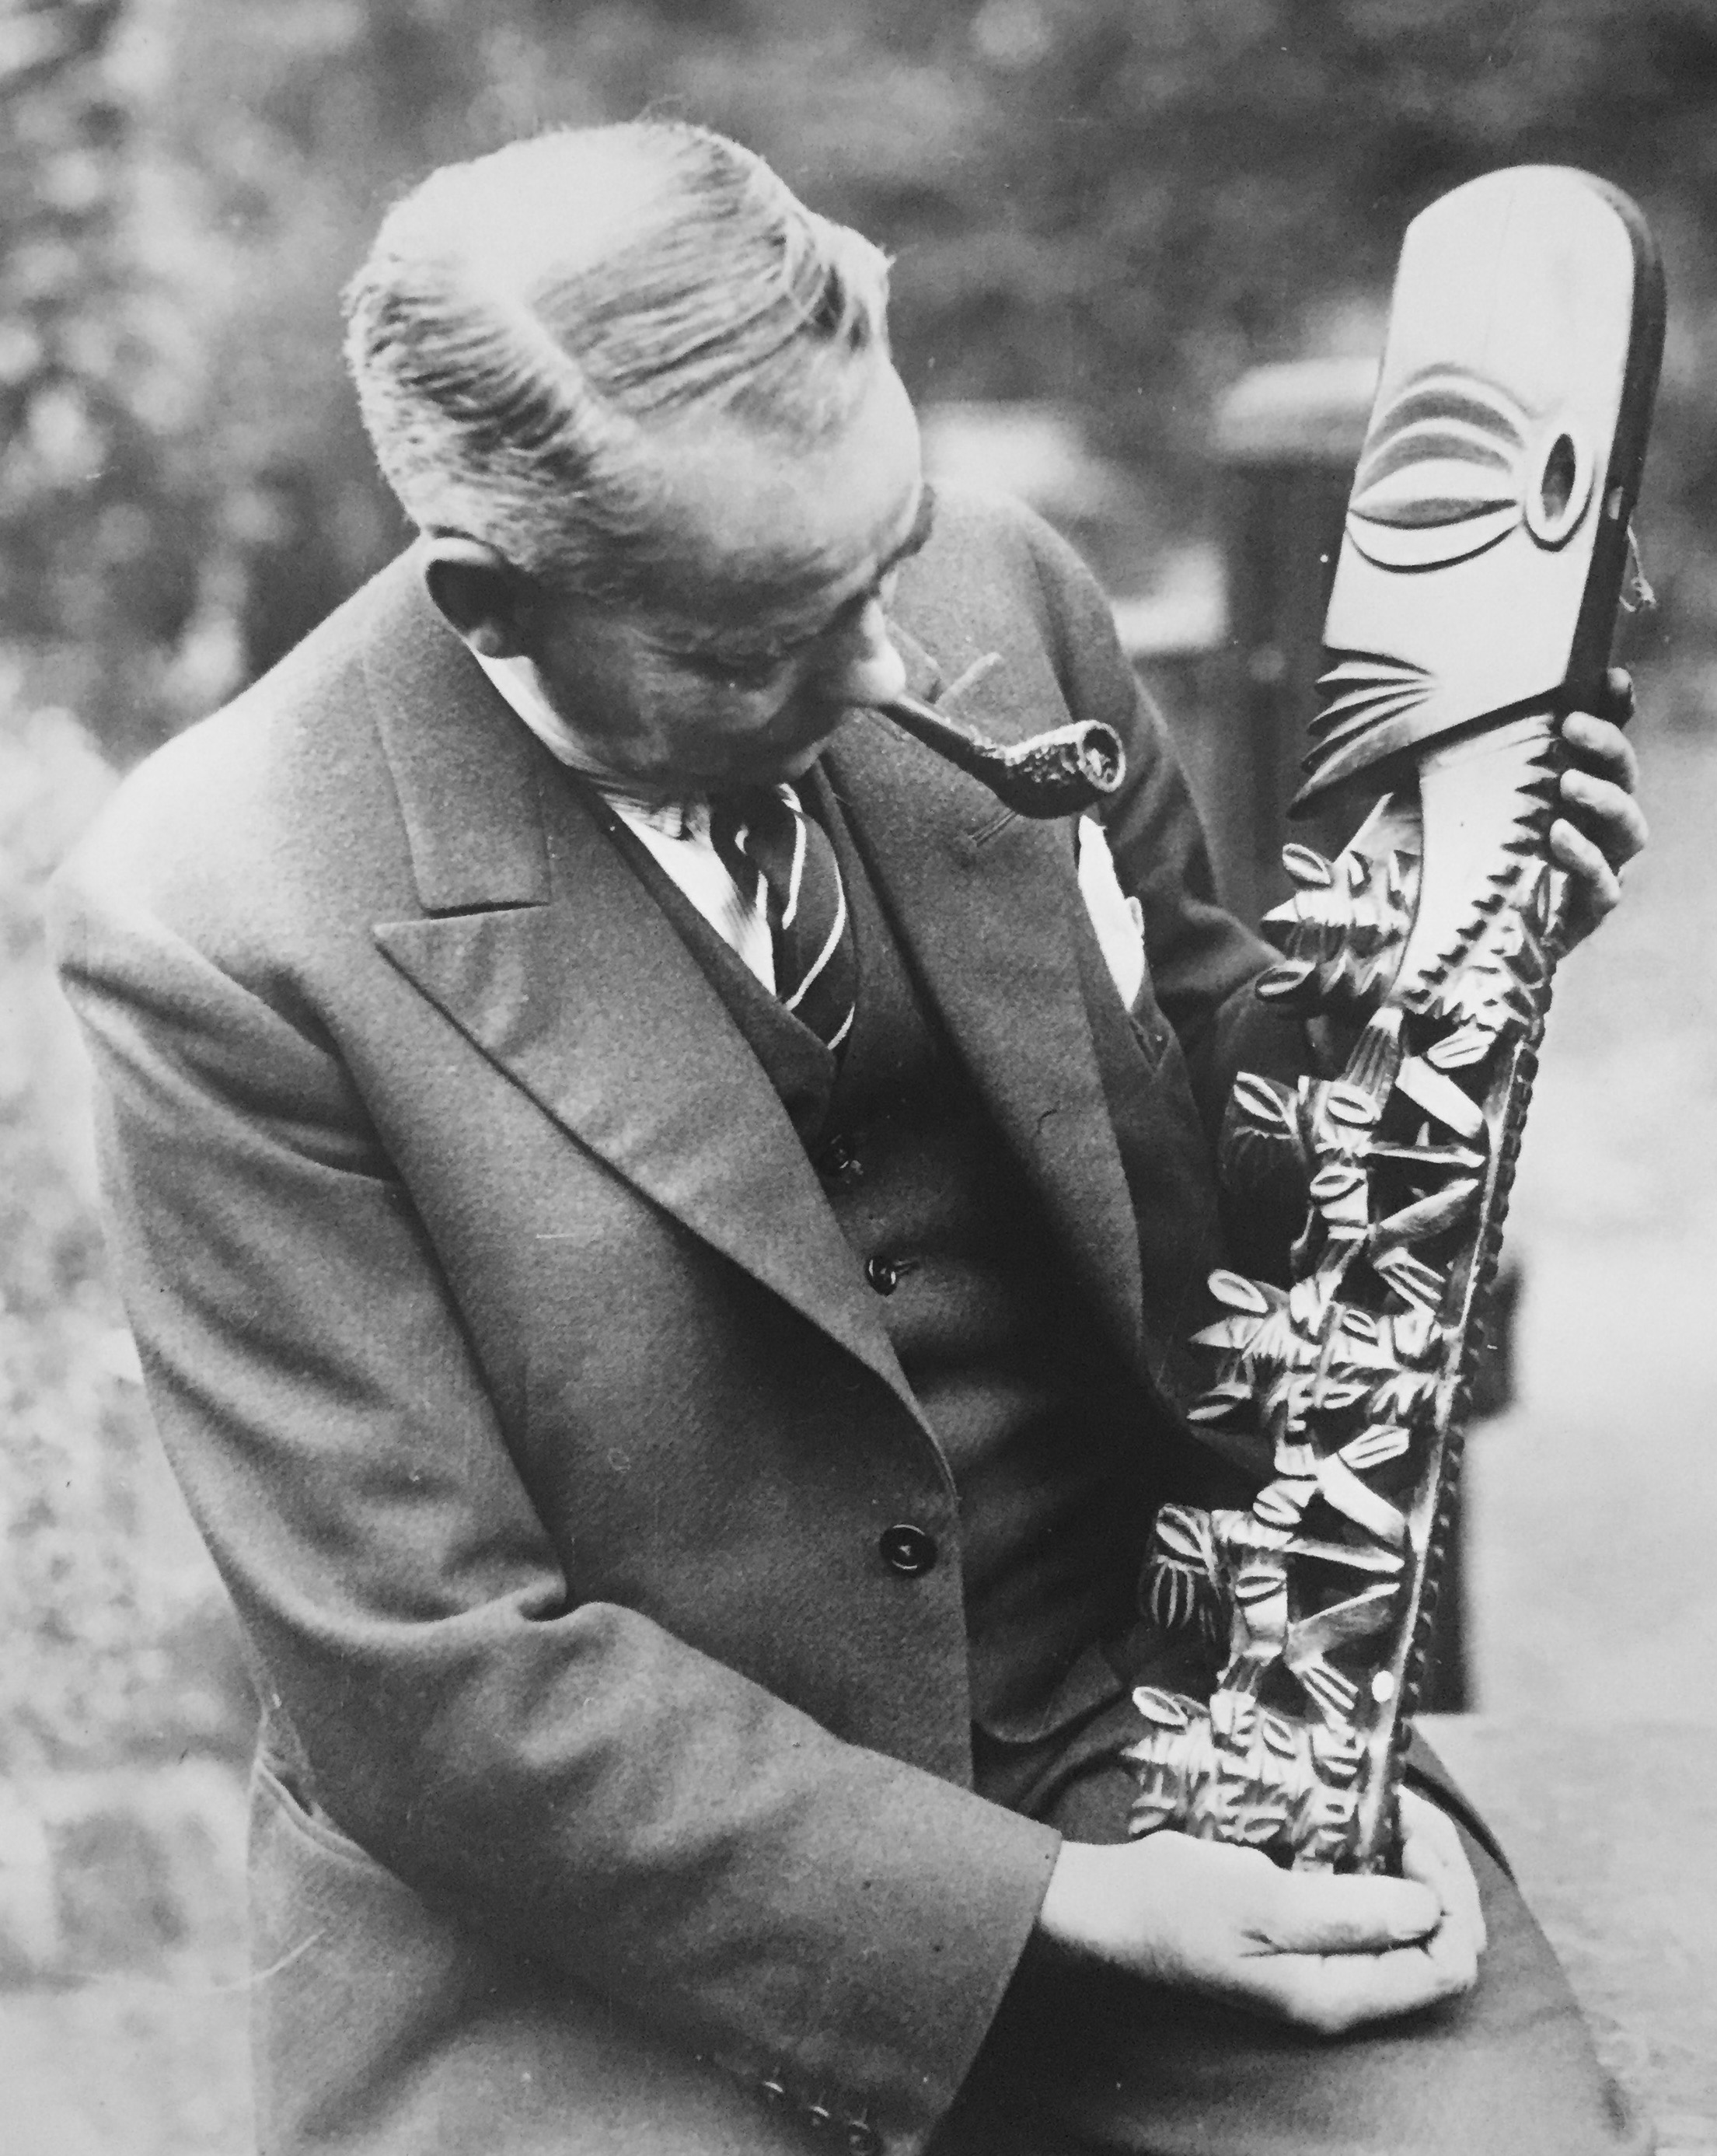 William O. Oldman holding a Rarotongan staff god figure. Image courtesy of Robert Hales.